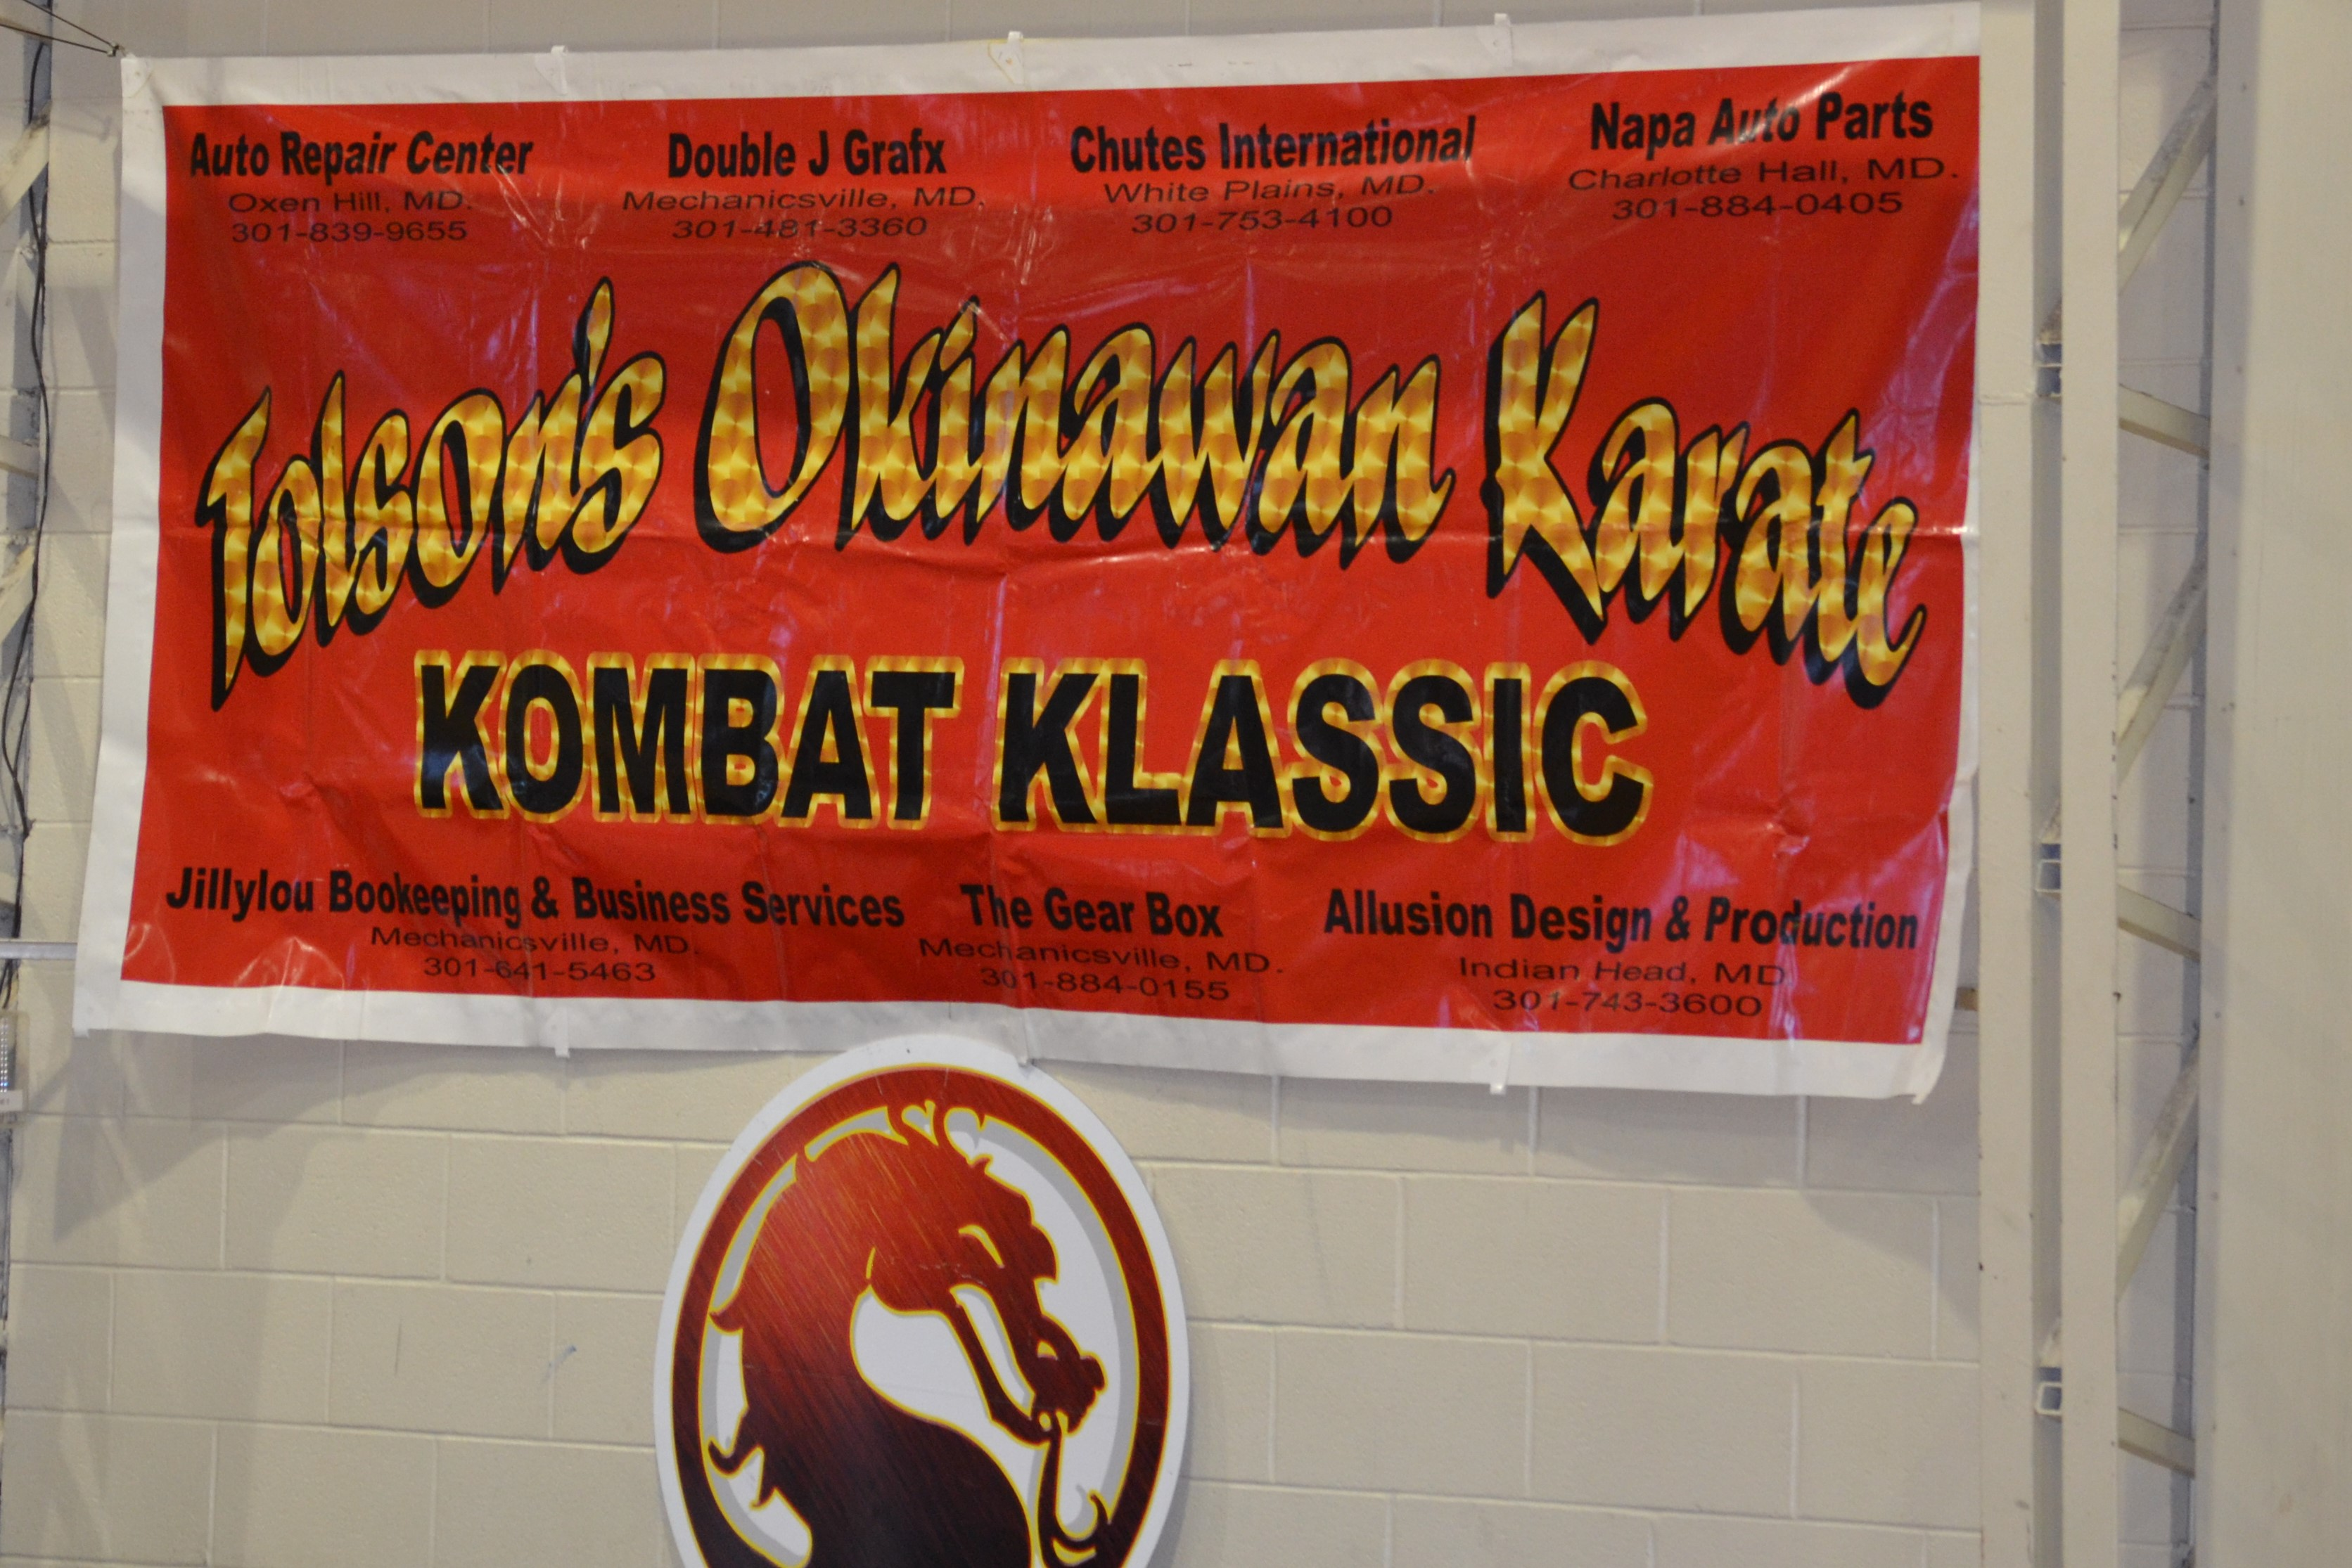 19th Annual Kombat Klassic Martial Arts Tournament